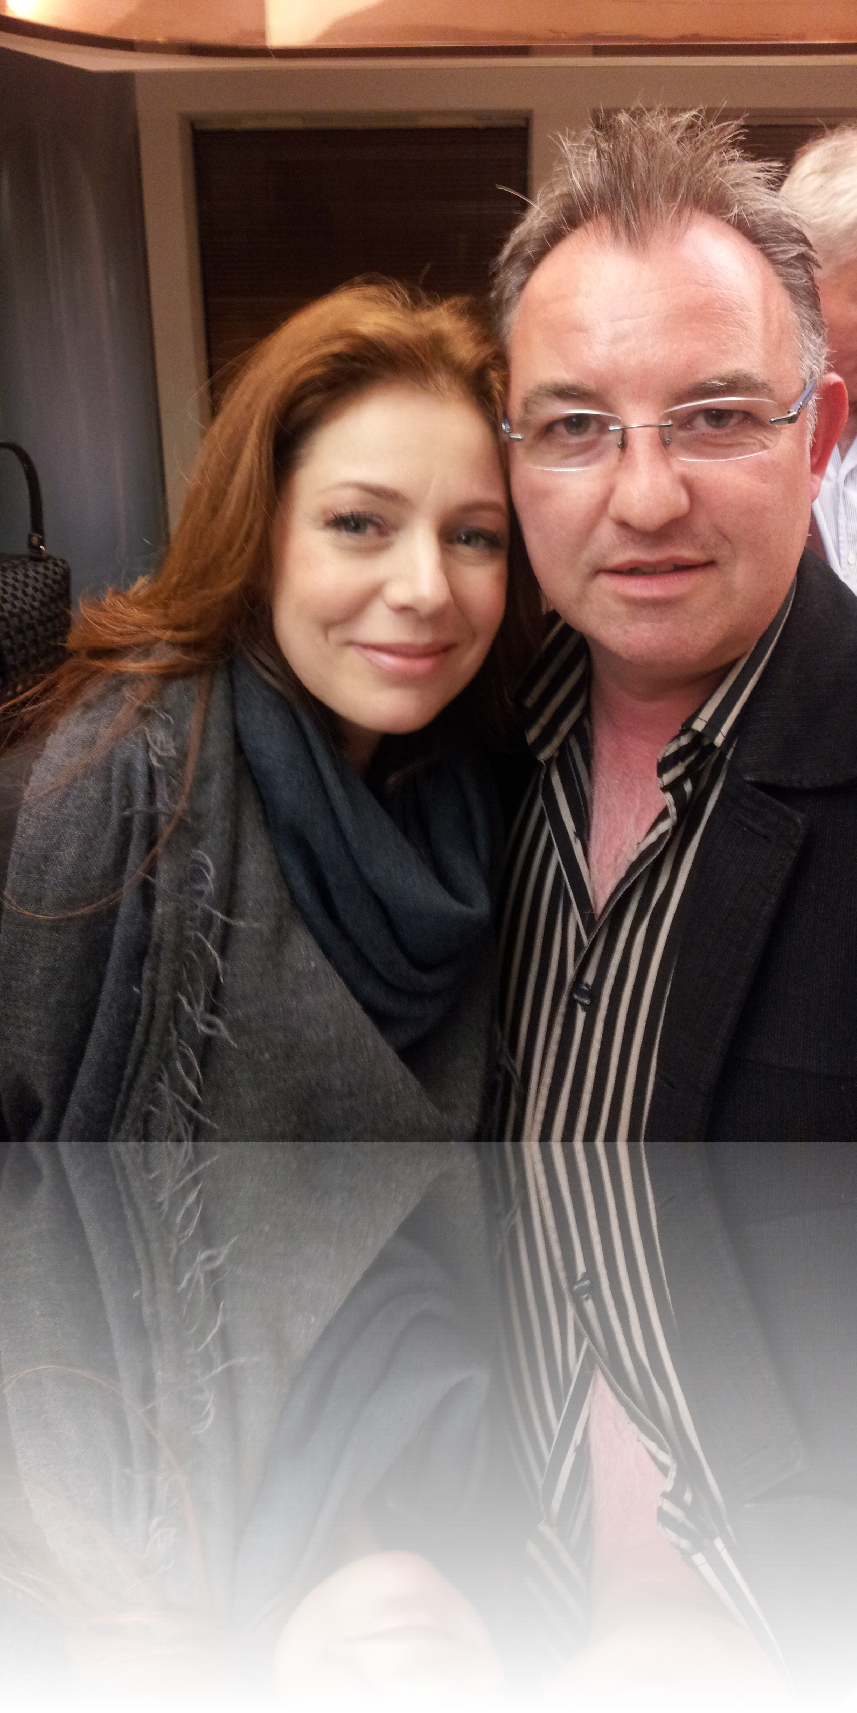 isabelle boulay et morgan